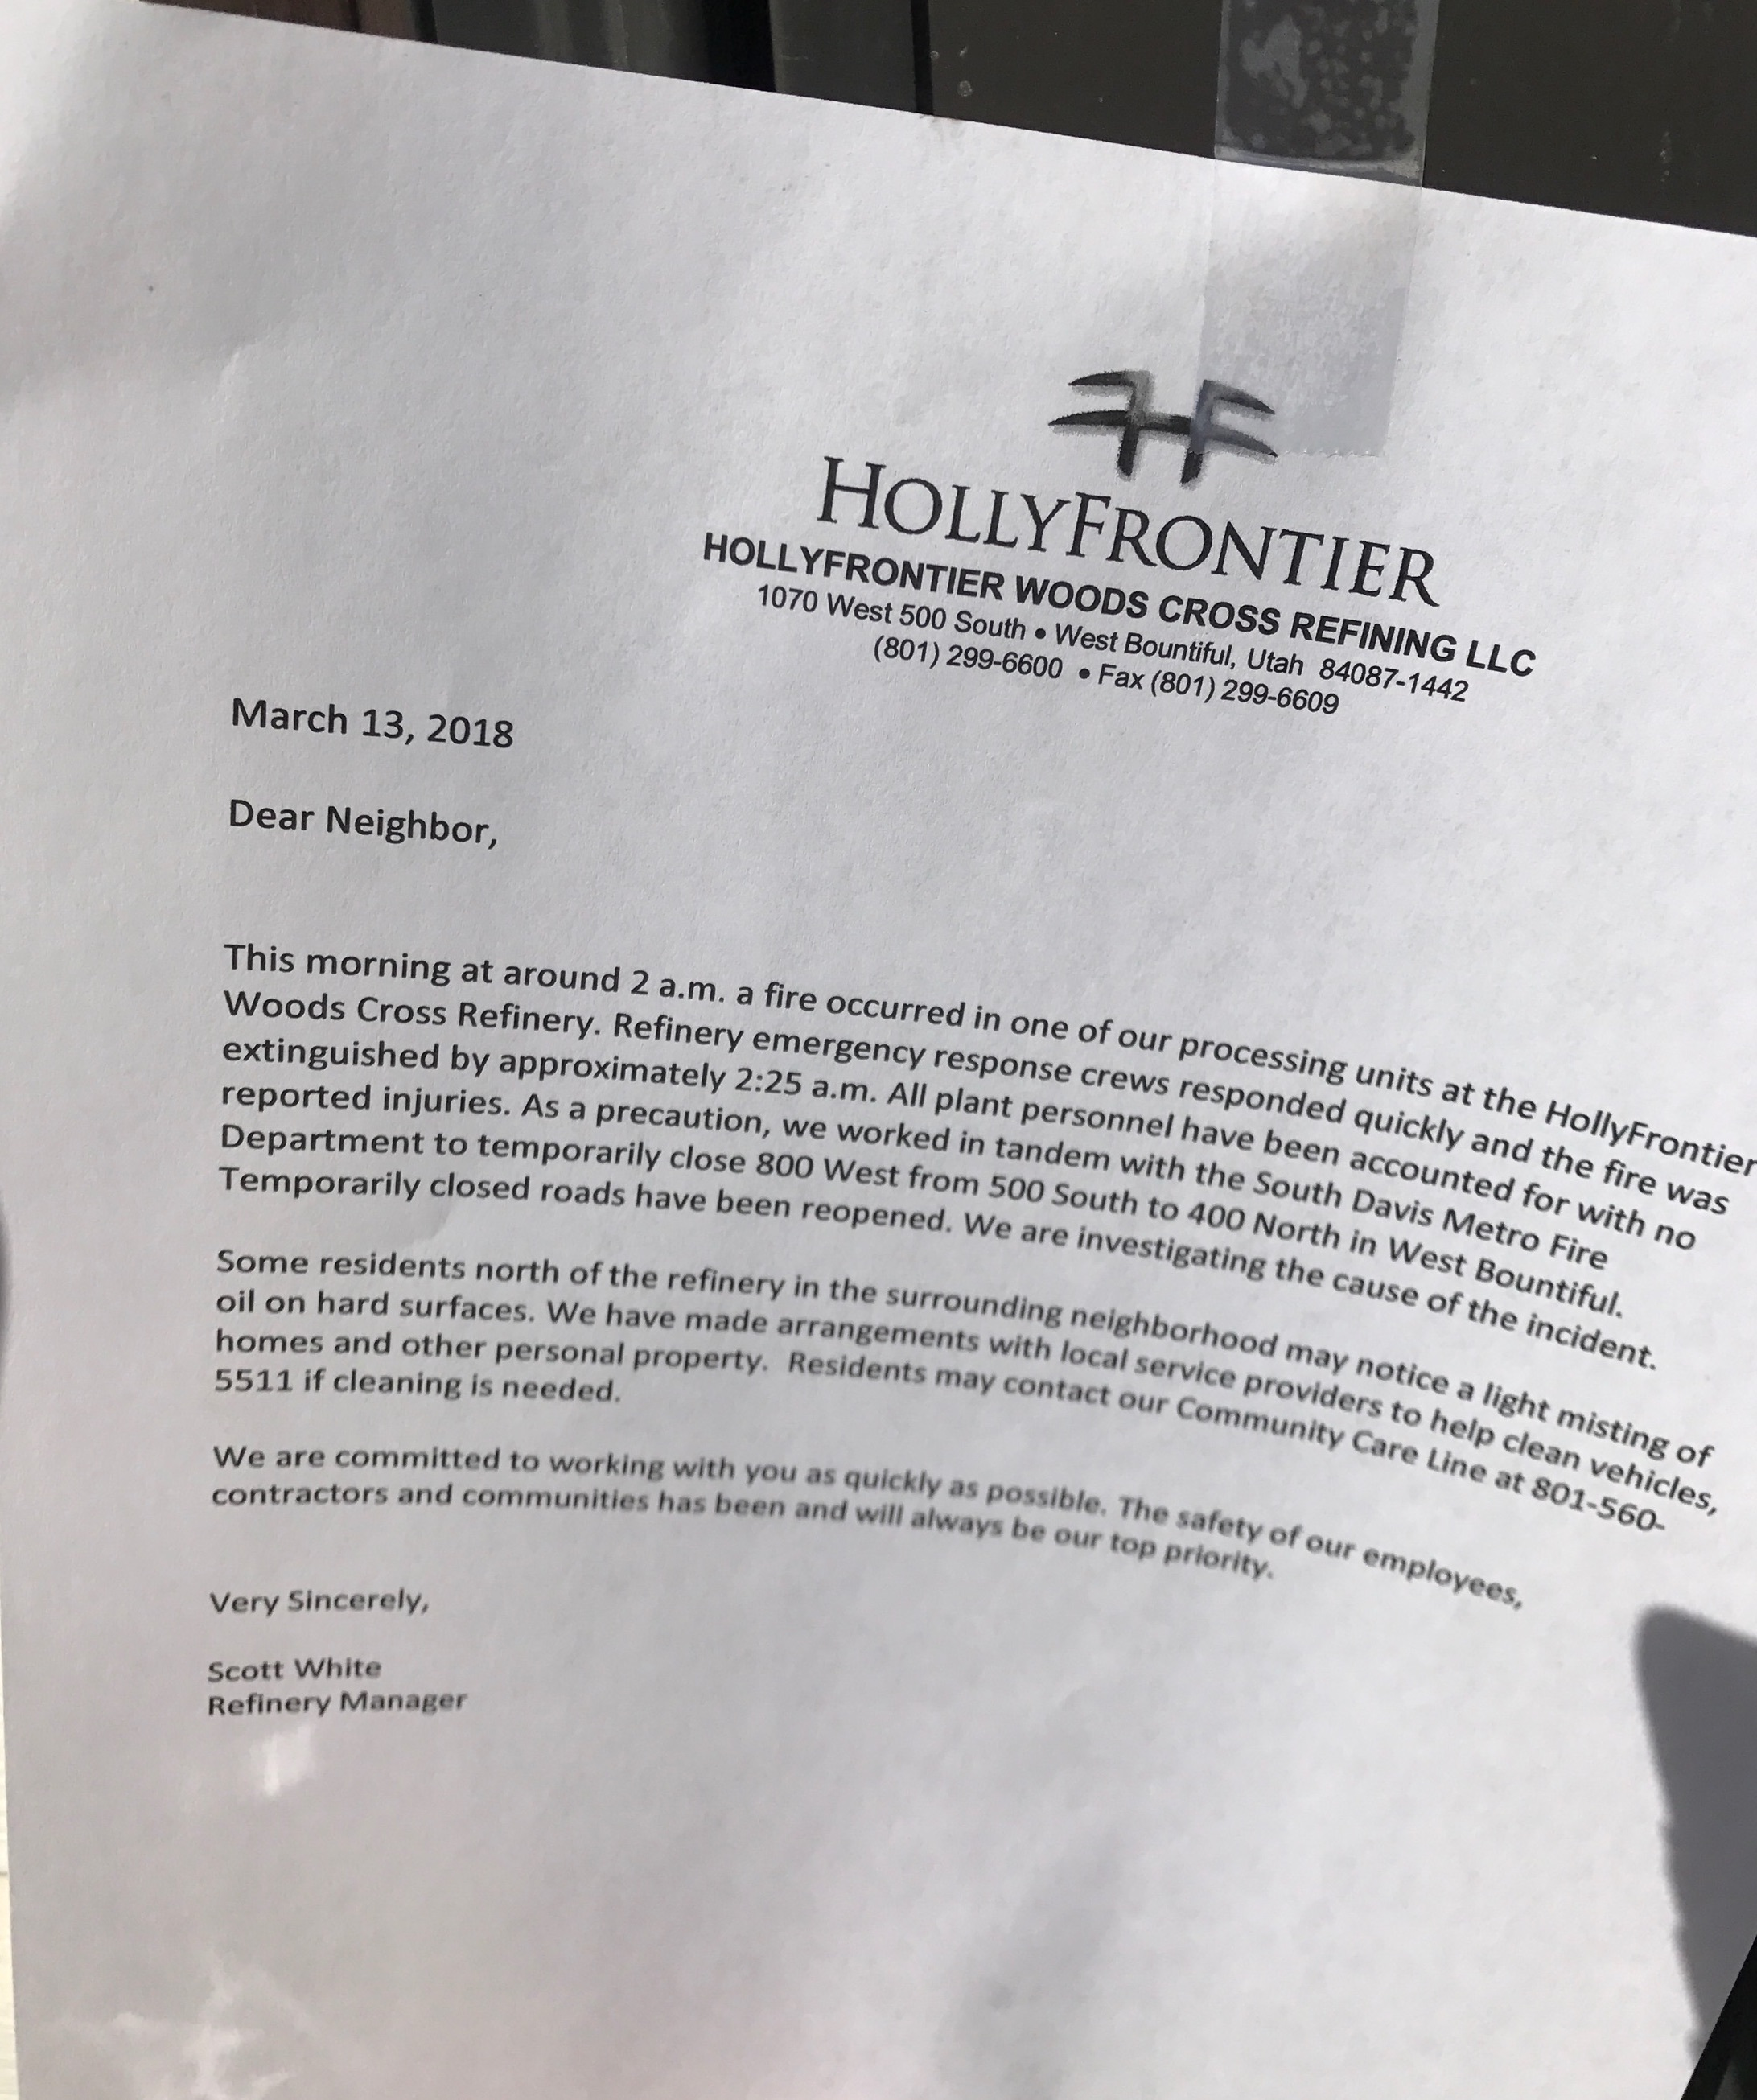 Notes taped to doors of homes in West Bountiful told residents of a refinery fire that left oil residue on homes and cars nearby. HollyFrontier said it was arranging for cleanup crews to help people lift the substance from cars, homes and other property.